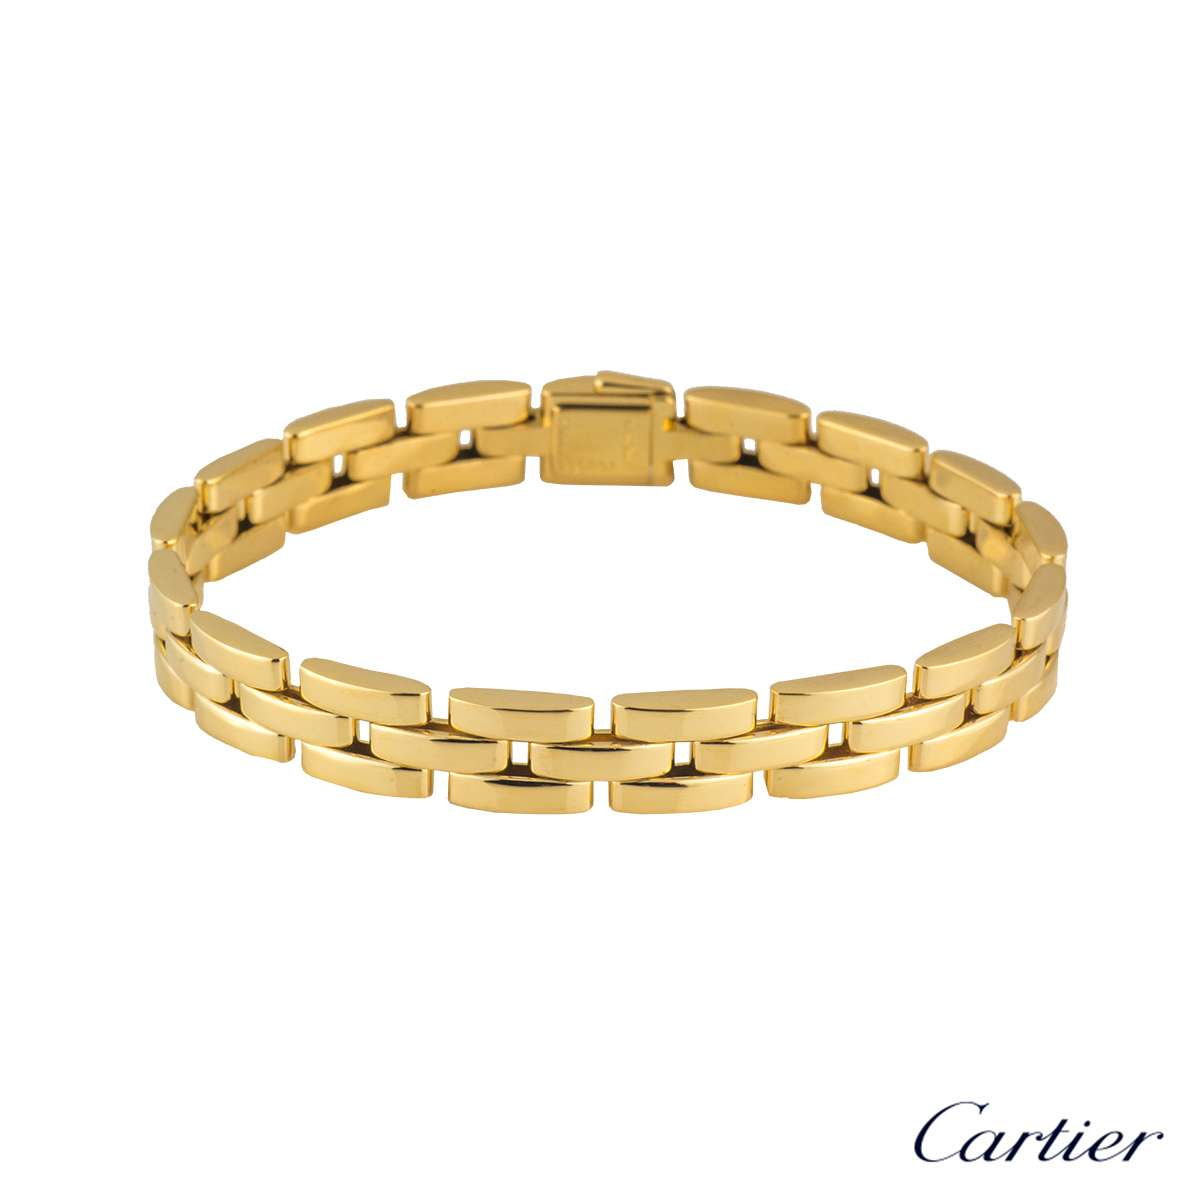 Cartier Yellow Gold Maillon Panthere Bracelet B6030900